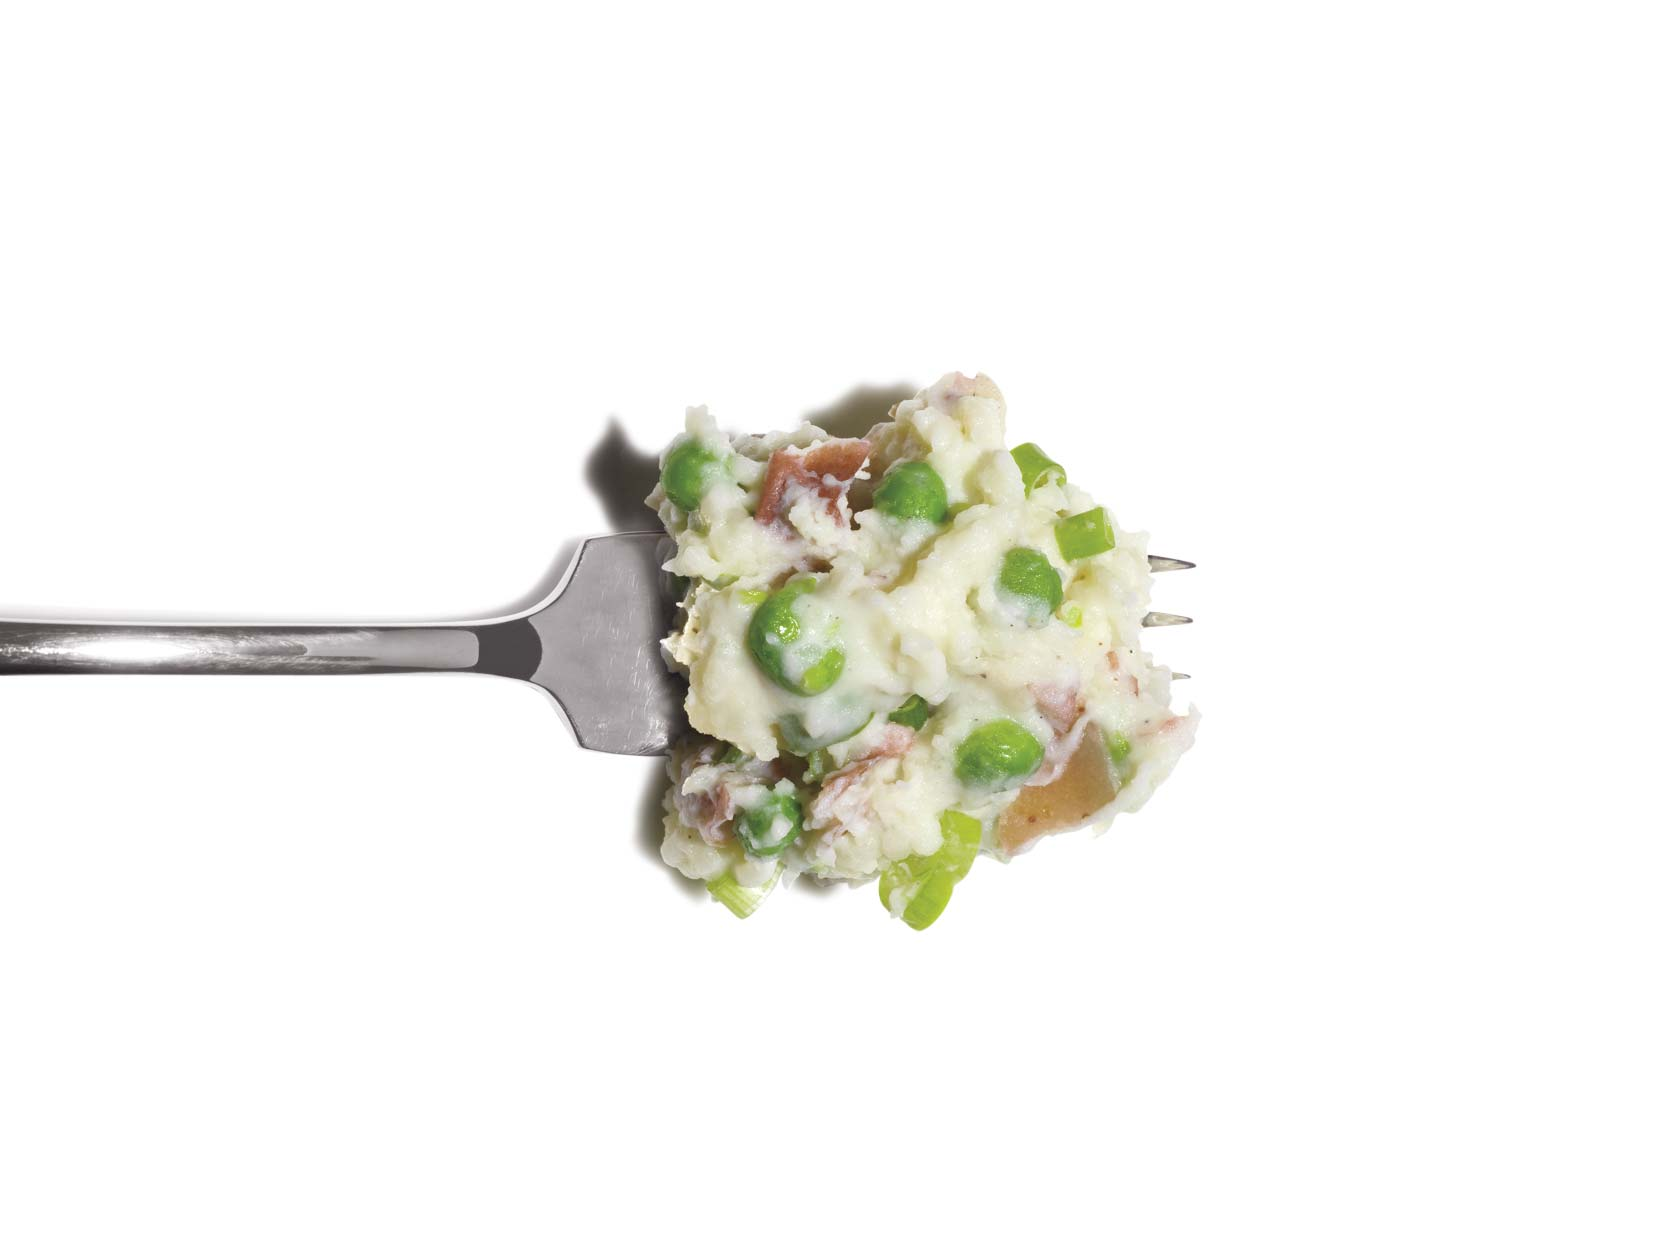 Mashed Potatoes With Peas and Scallions